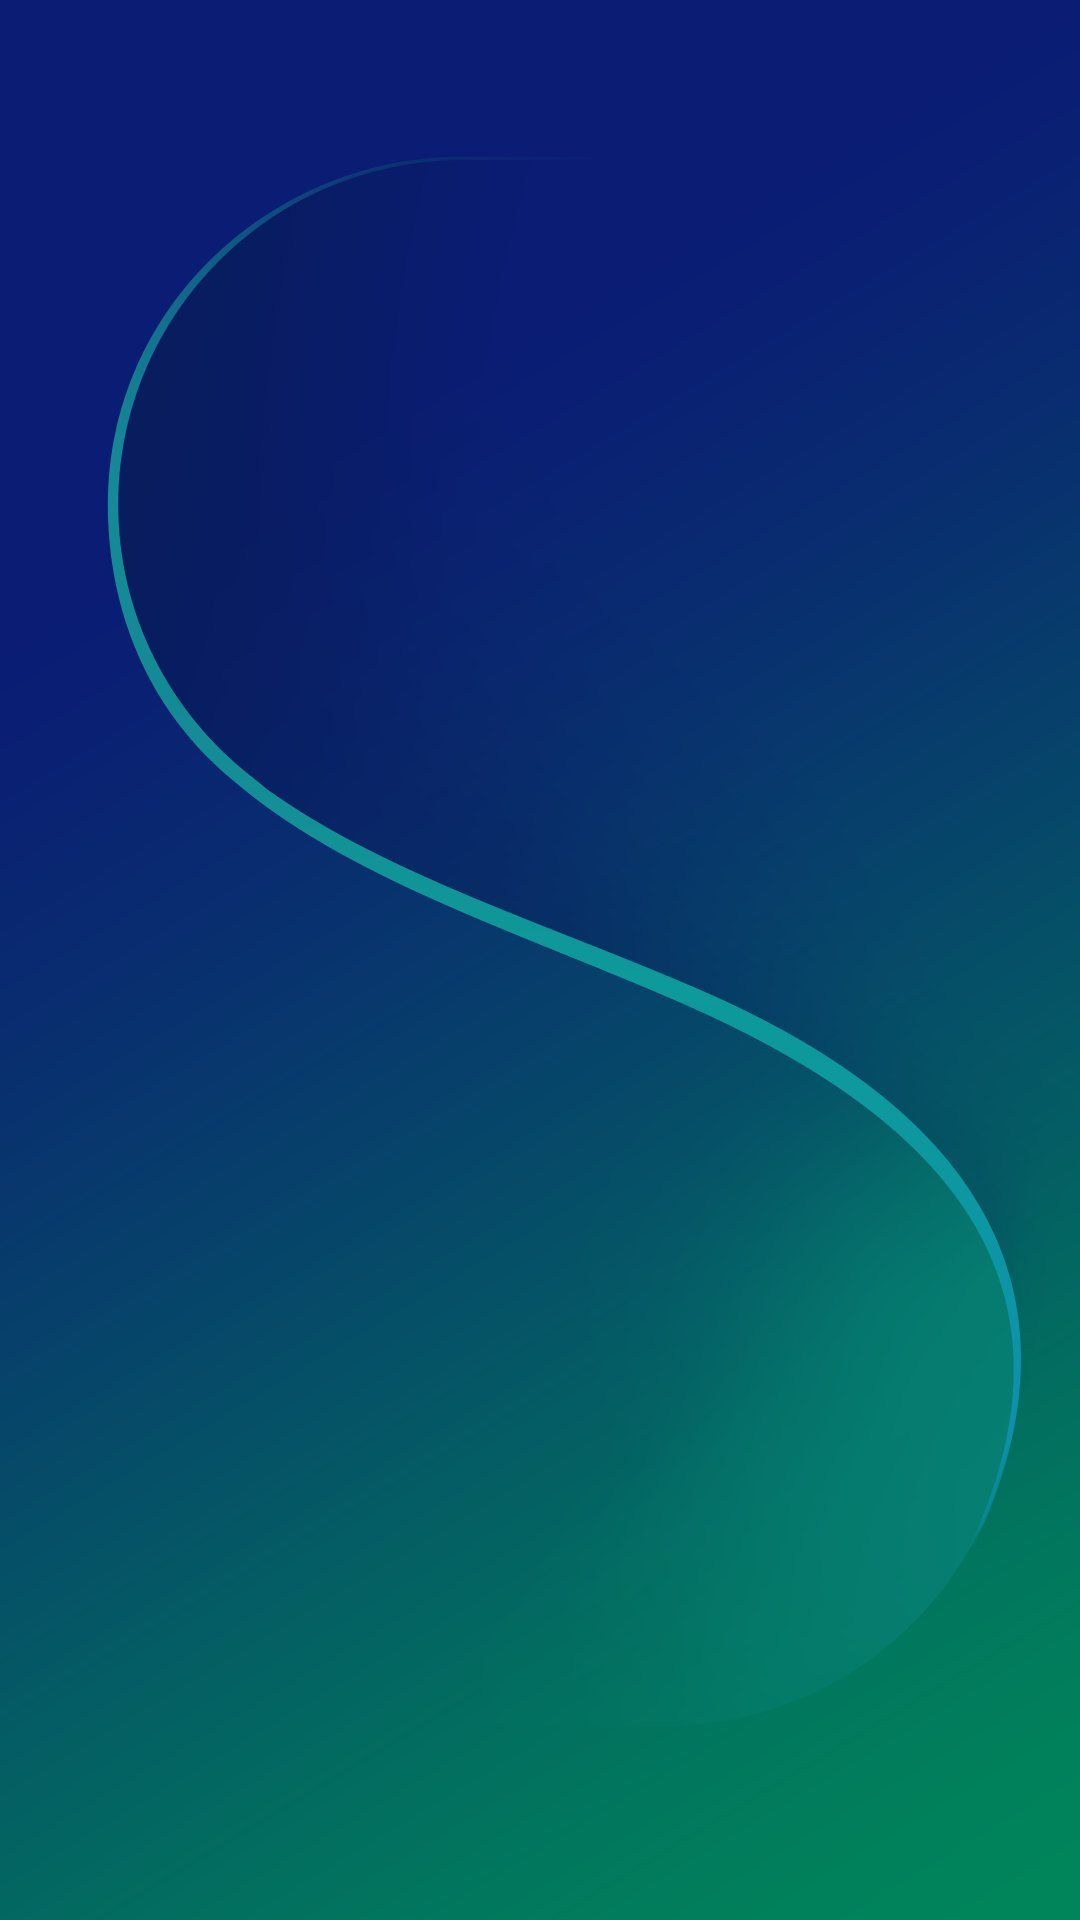 Hd wallpaper oppo - Simple Abstract Wallpapers